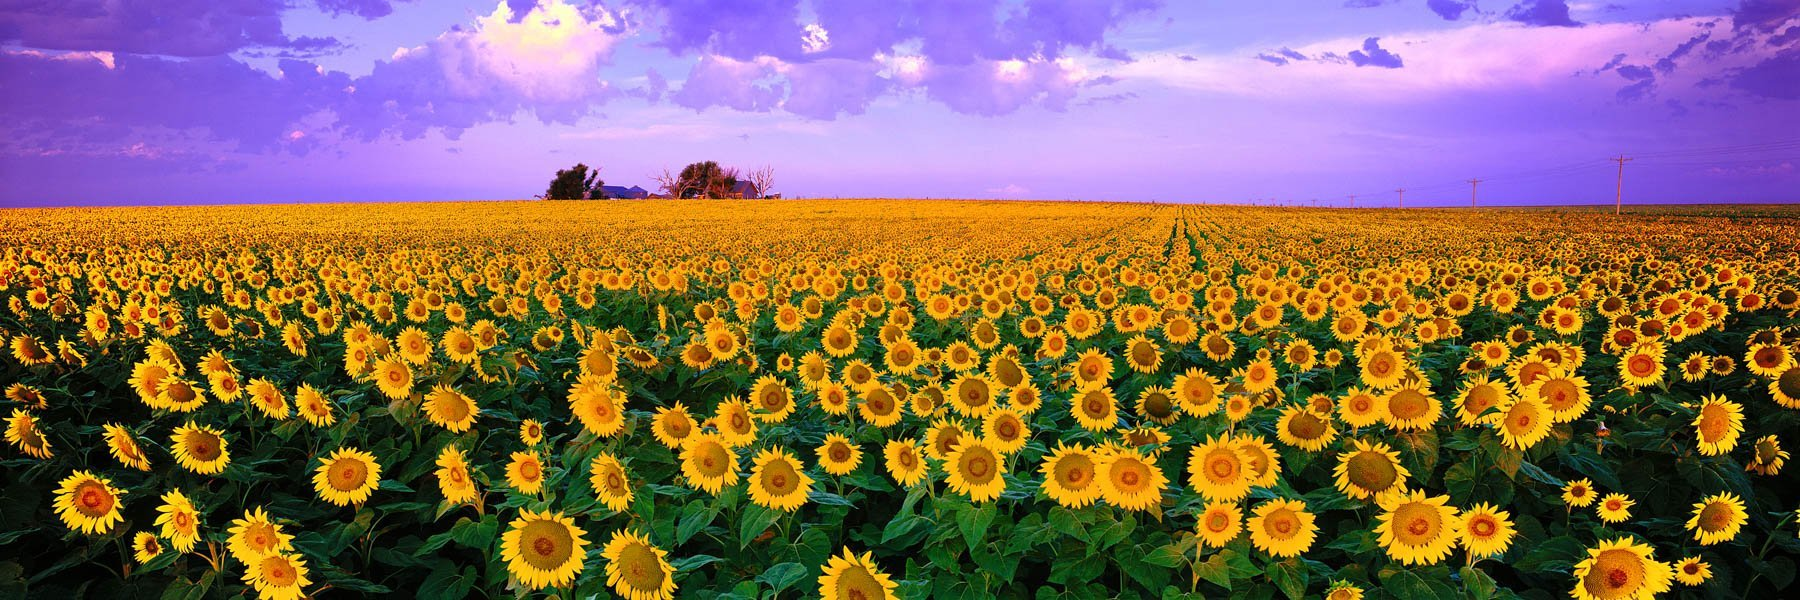 A field of sunflowers in full bloom, Kansas, USA.